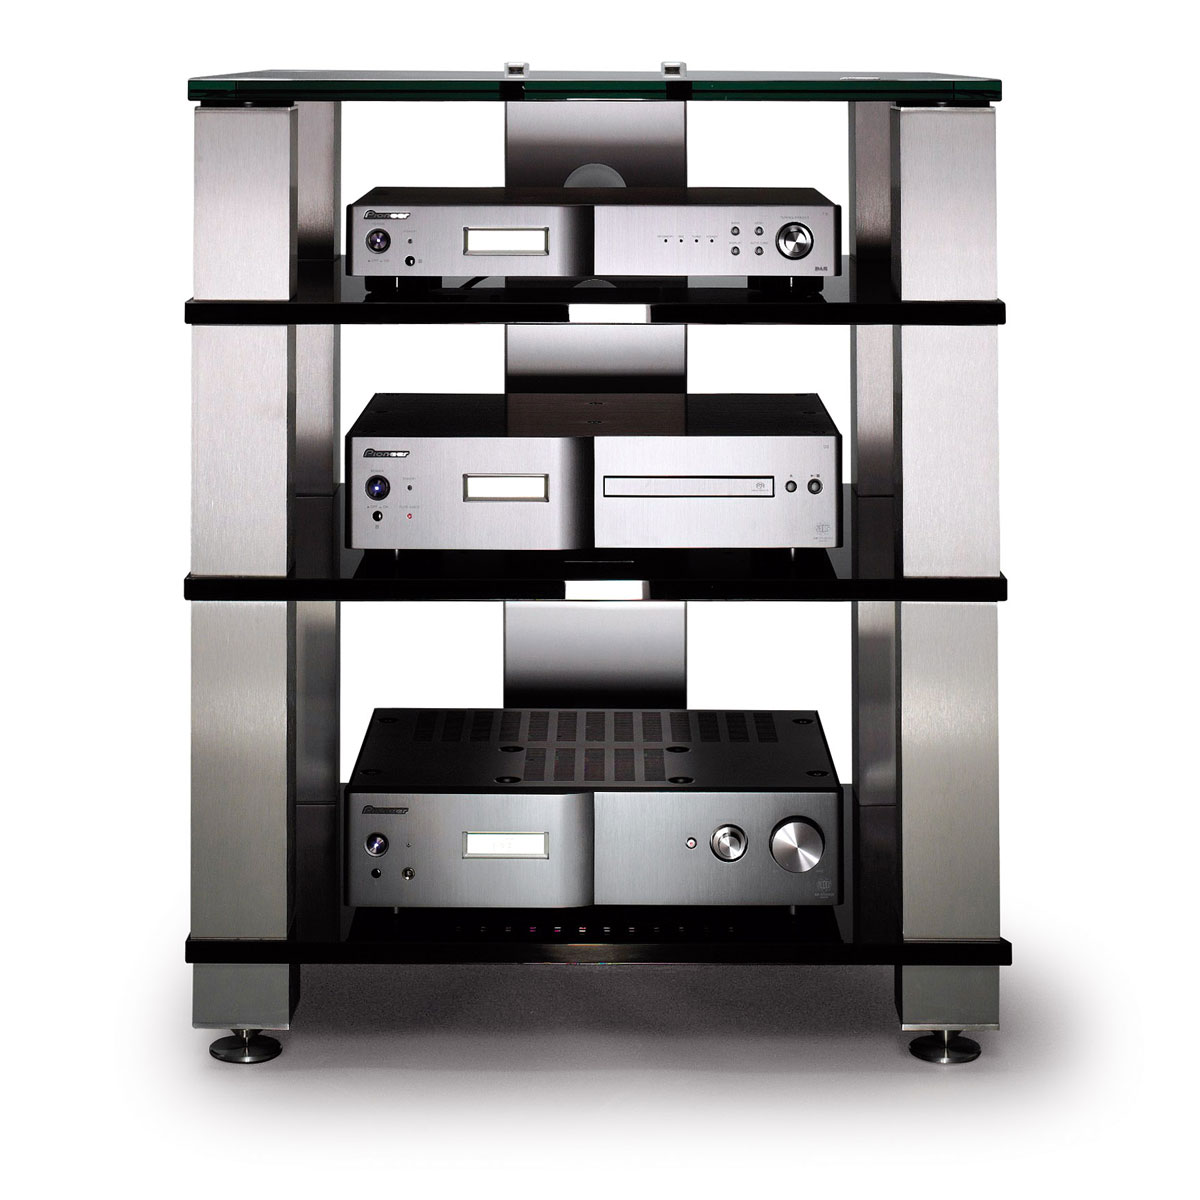 Empire Hi Fi Möbel Hifi Racks Archive Tv Möbel Und Hifi Möbel Guide